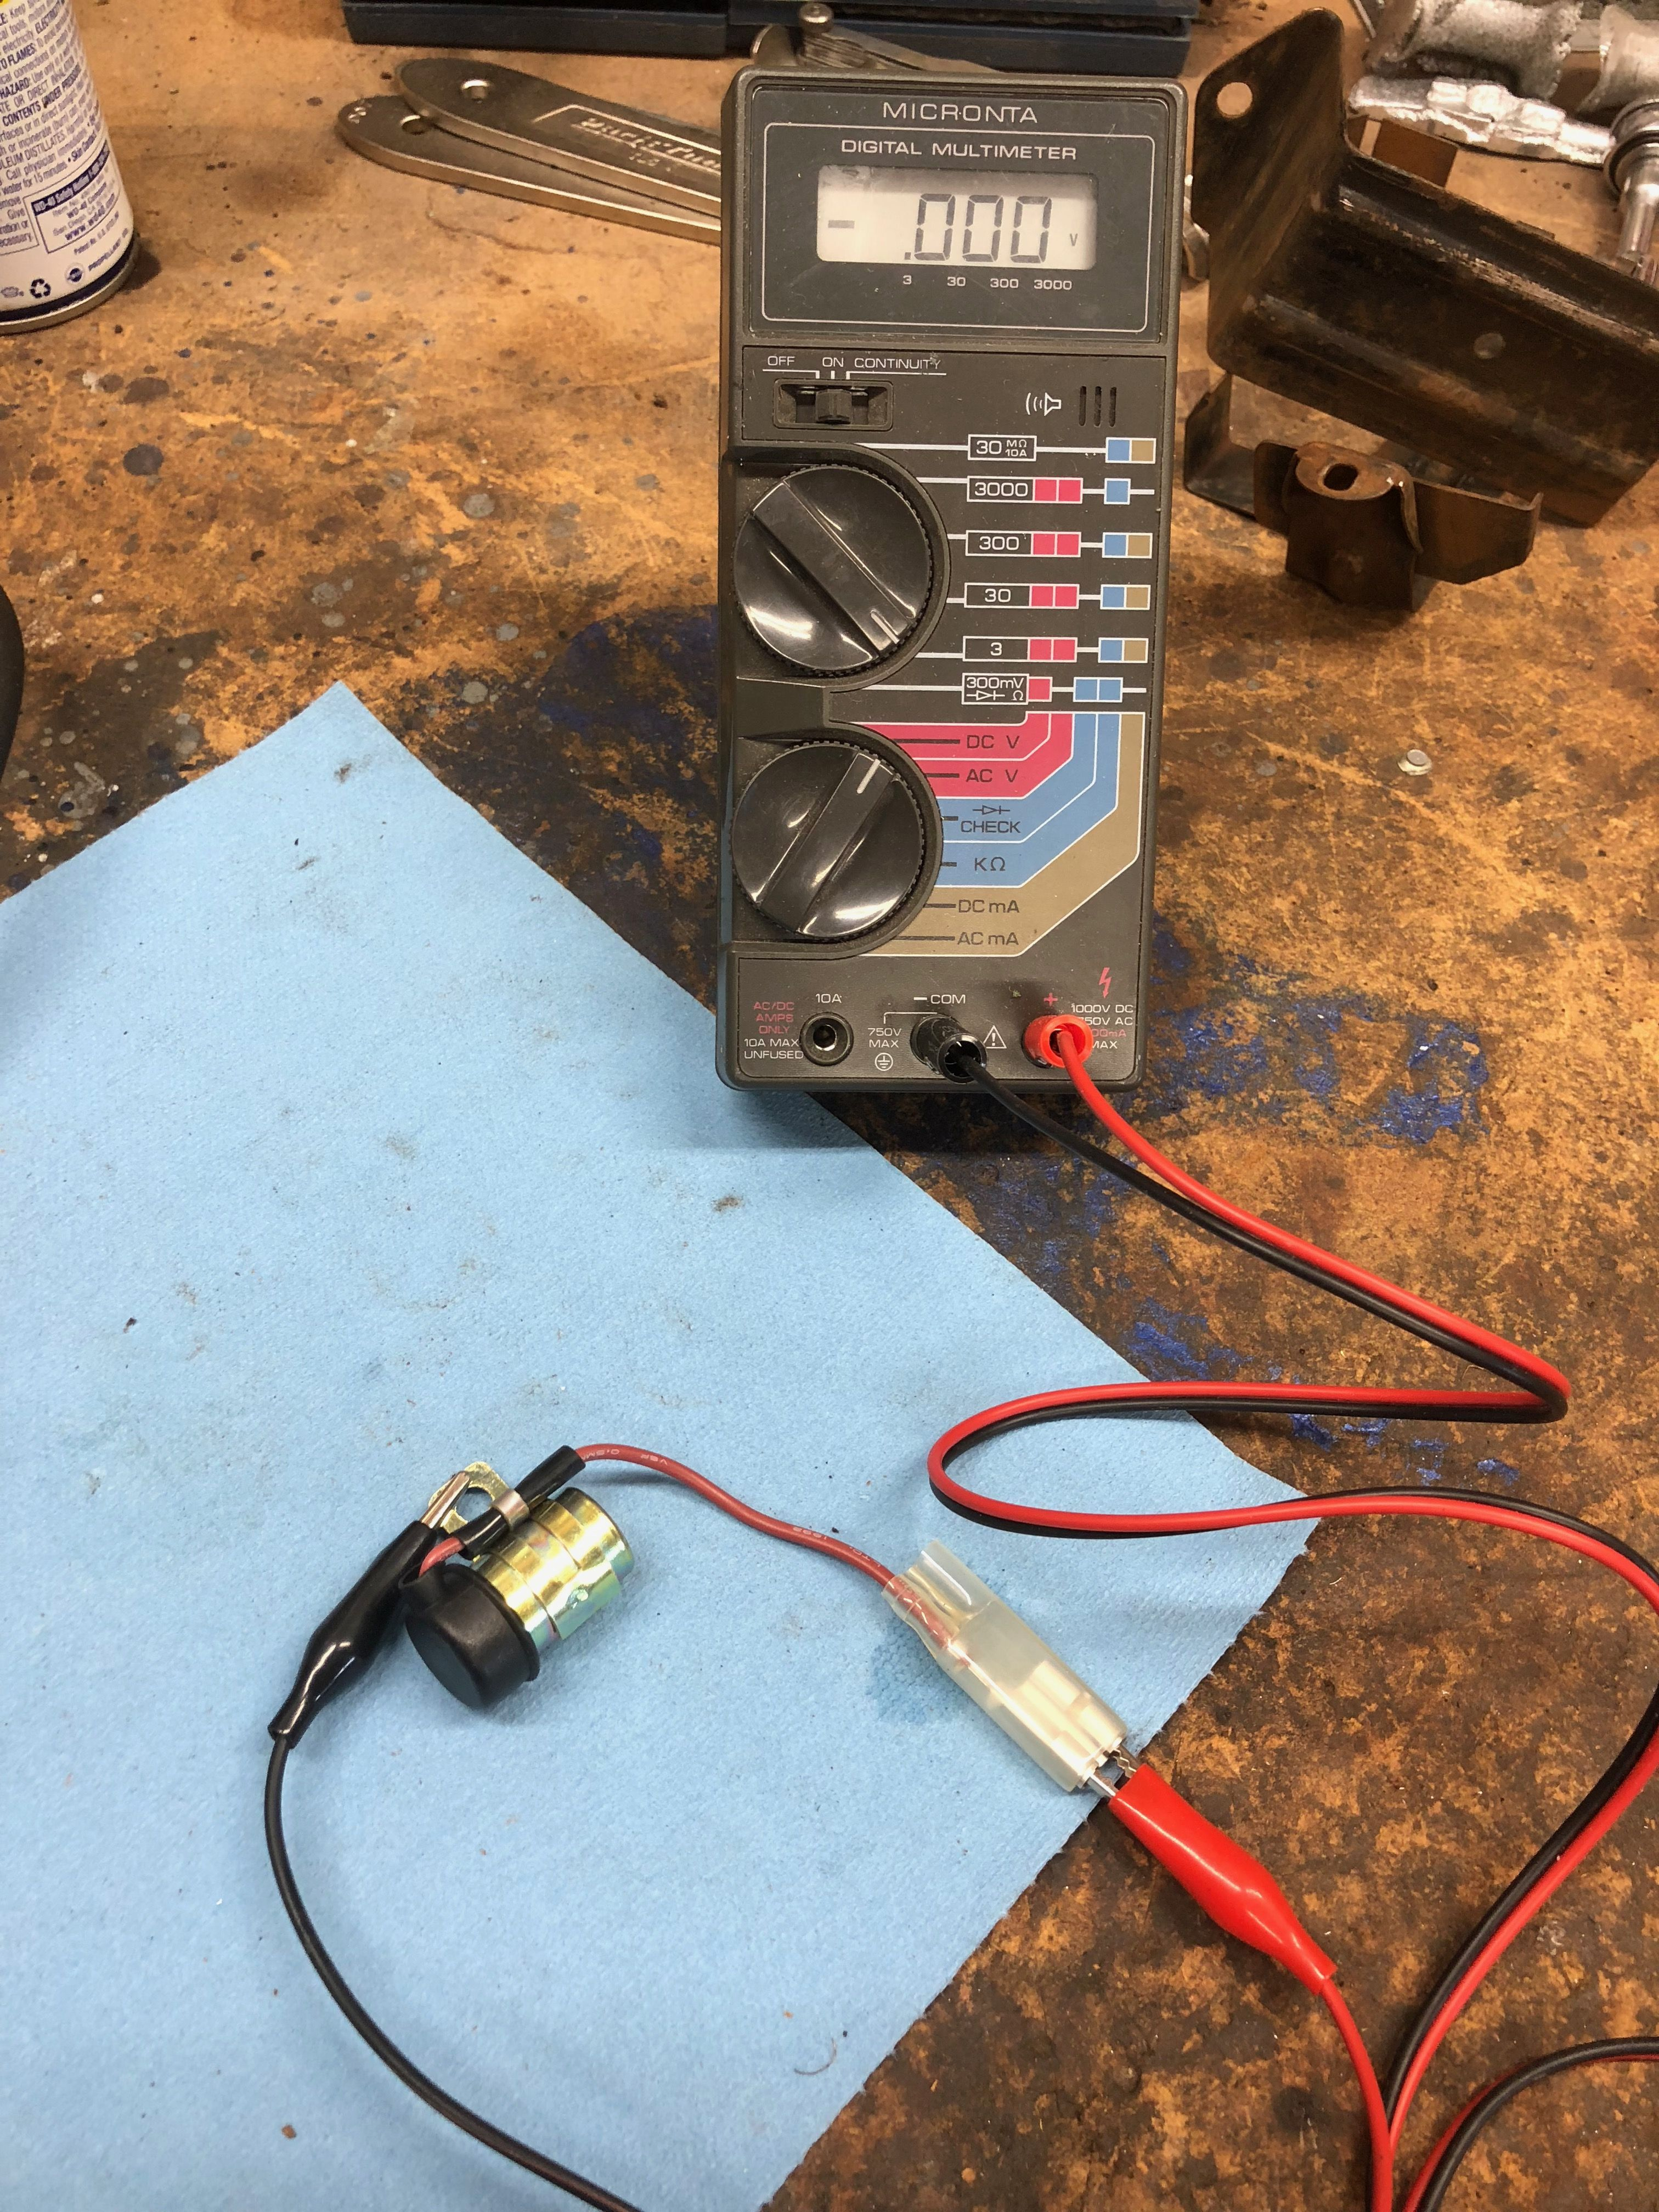 CT90 Condenser Test - At the attached link I explain how to test